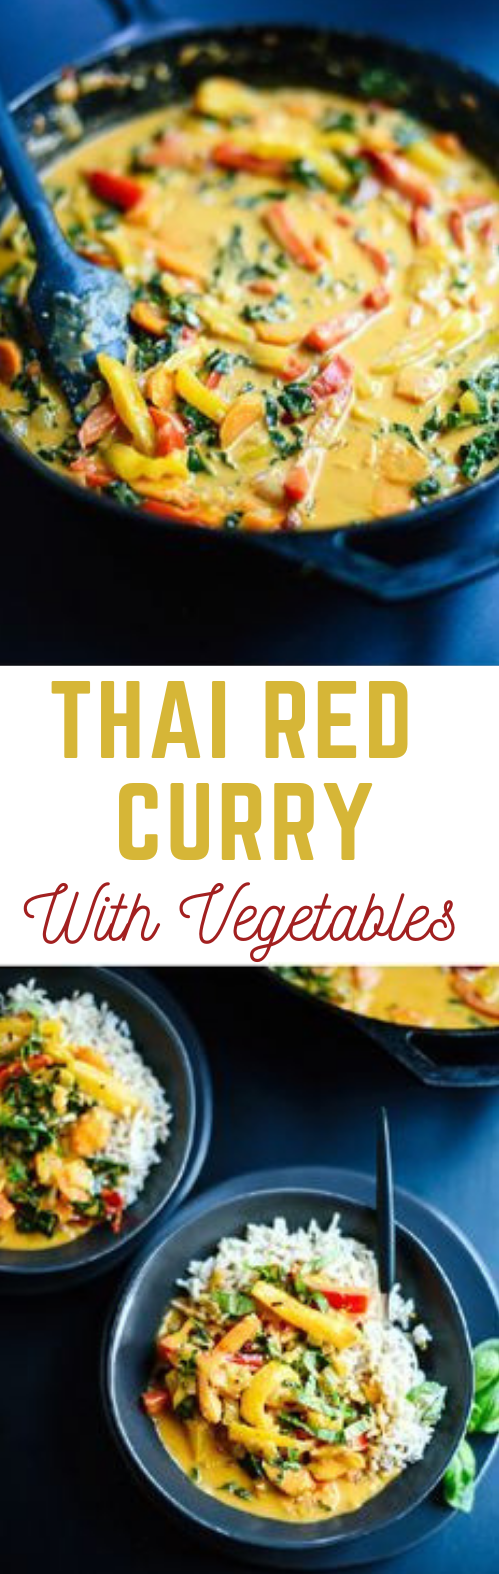 Thai Red Curry with Vegetables #dinner #healthyeat